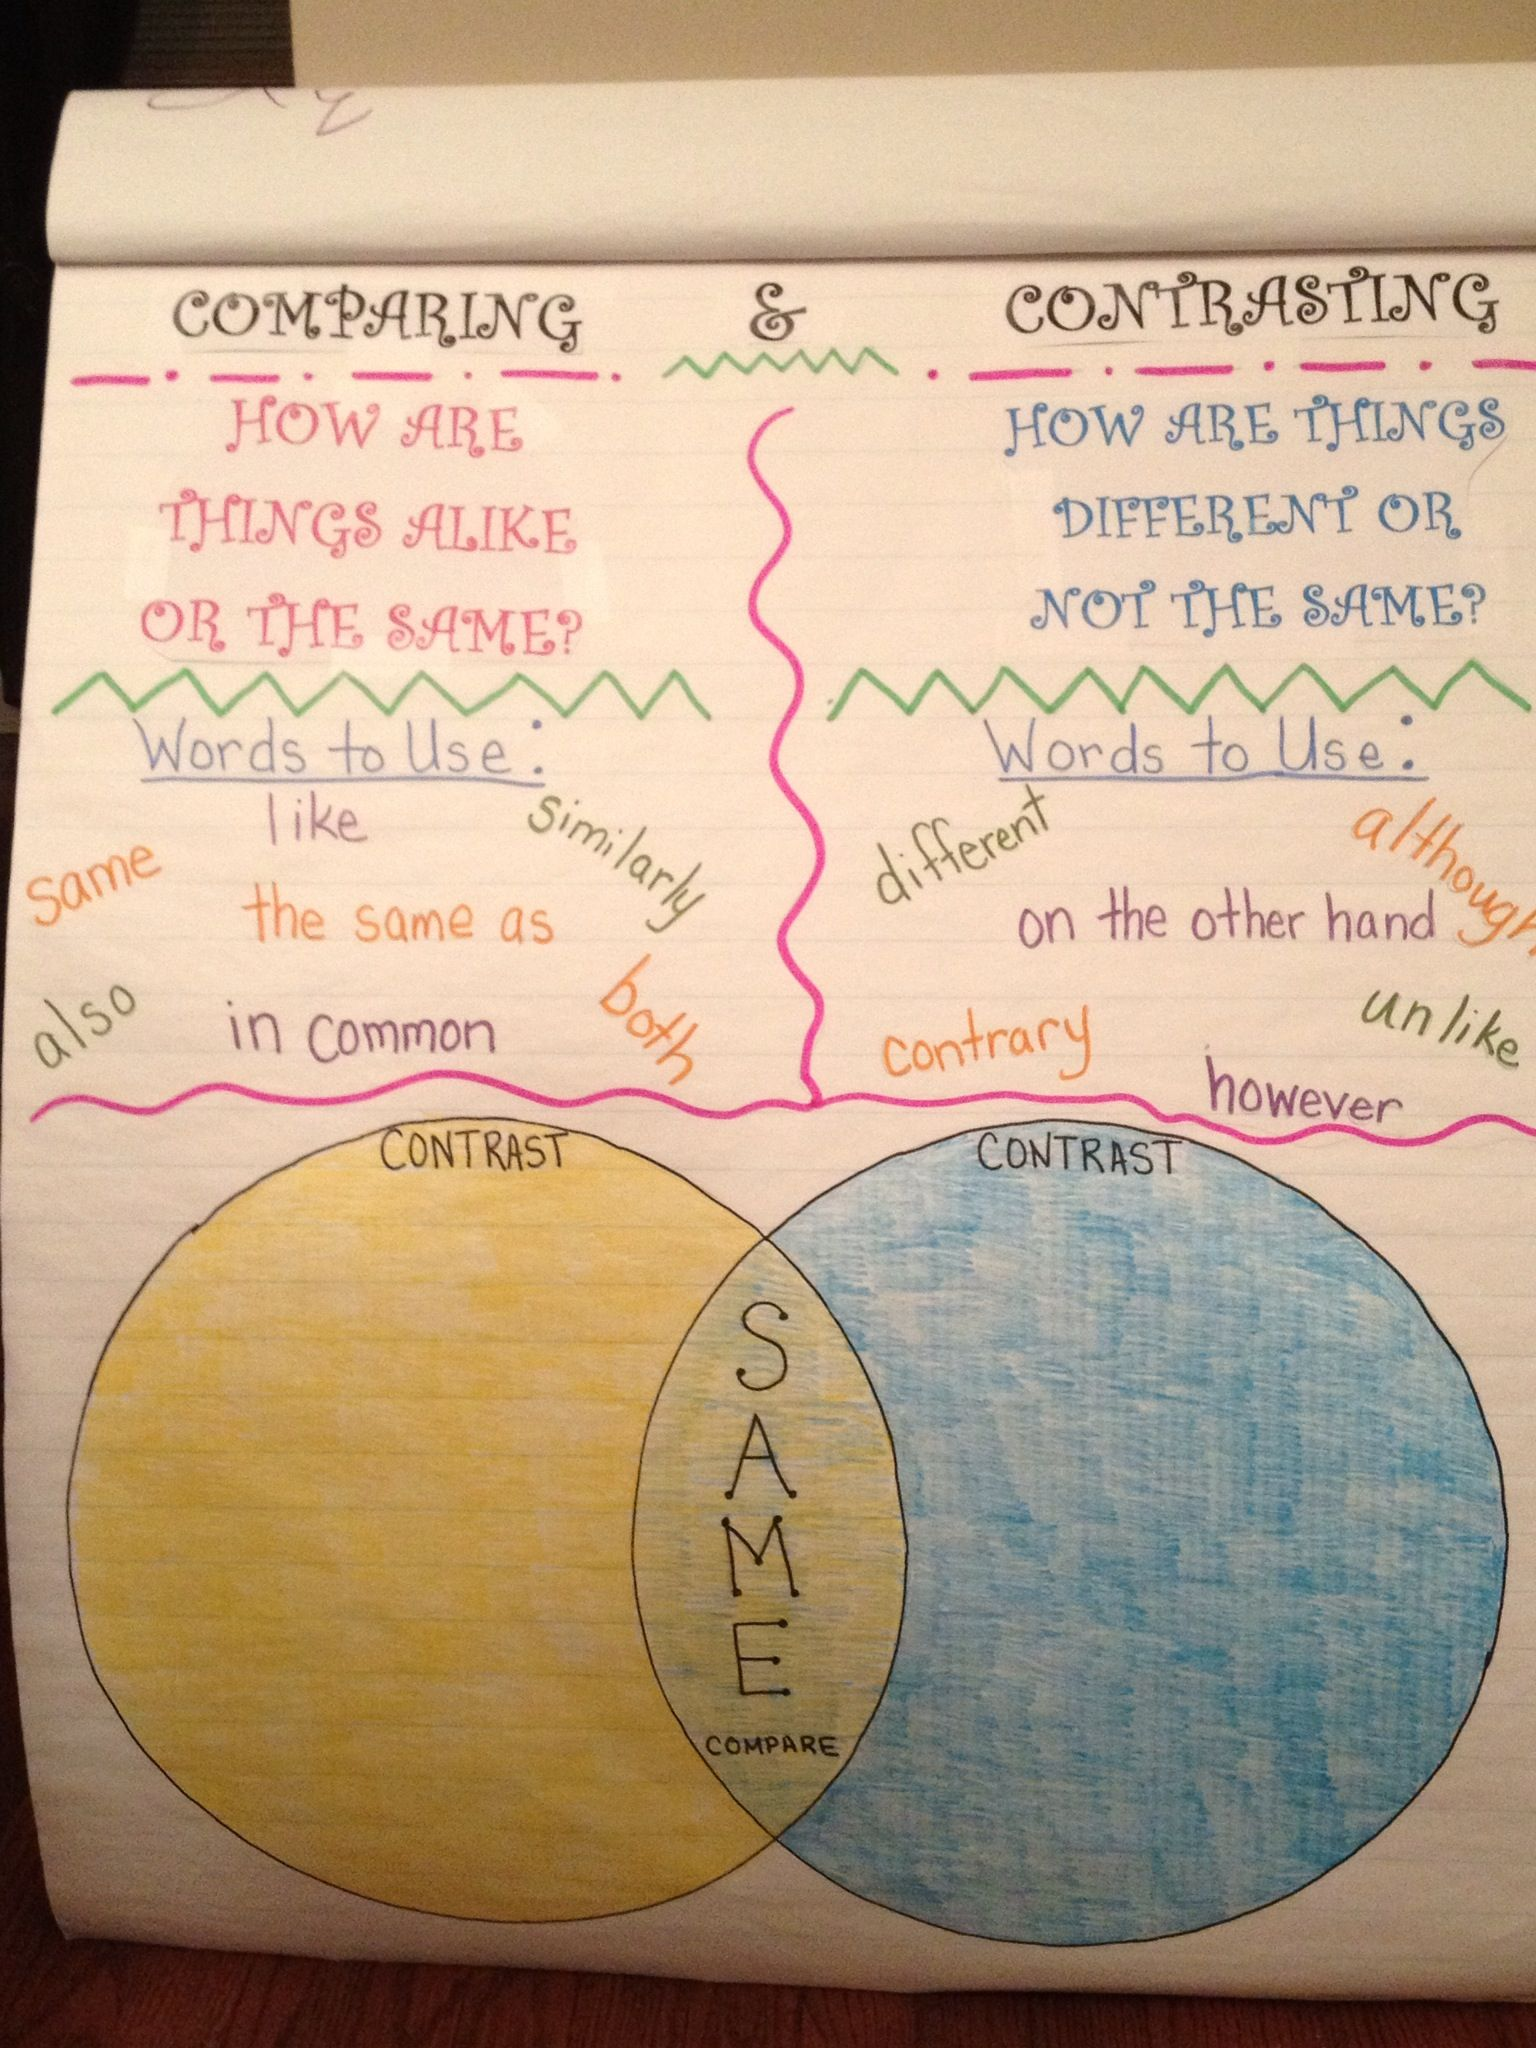 compare and contrast two teacher Two-sentence summary: if time and topic allow, a comparison/contrast essay is a great format for helping students think deeply about two ideas or concepts with multiple similarities and differences.